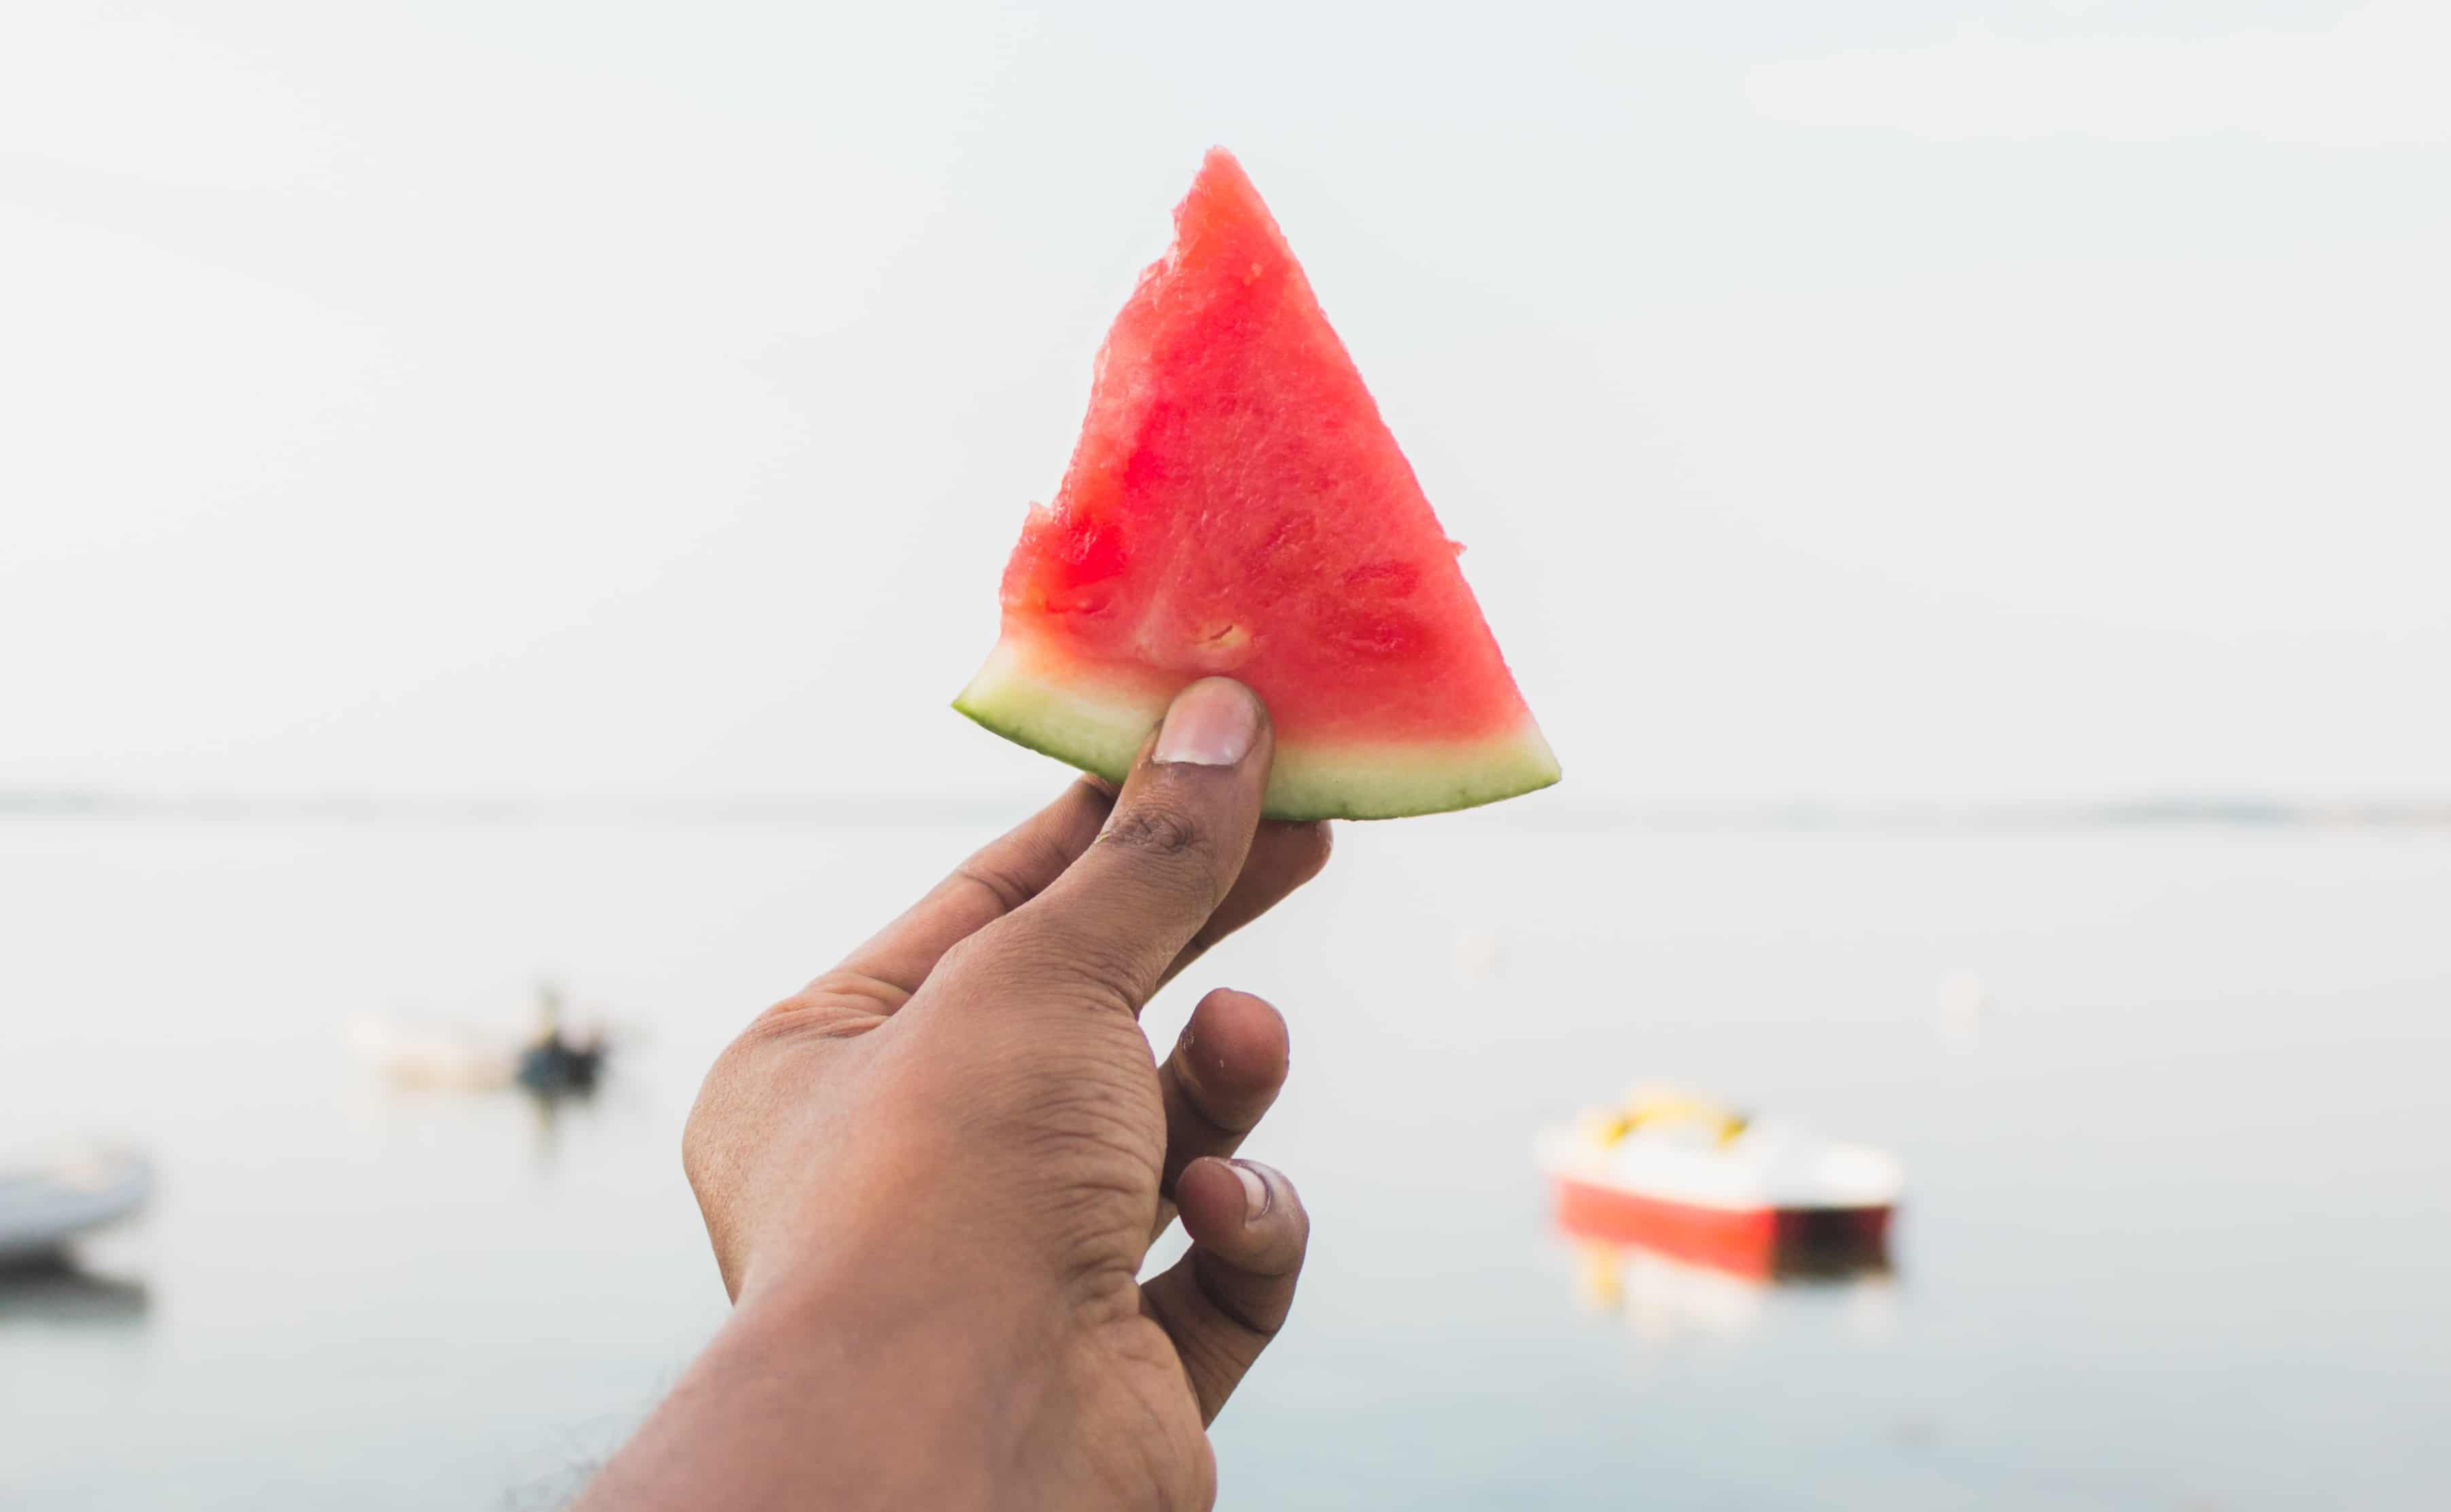 A hand holds up a triangular slice of seedless watermelon in front of a red boat.